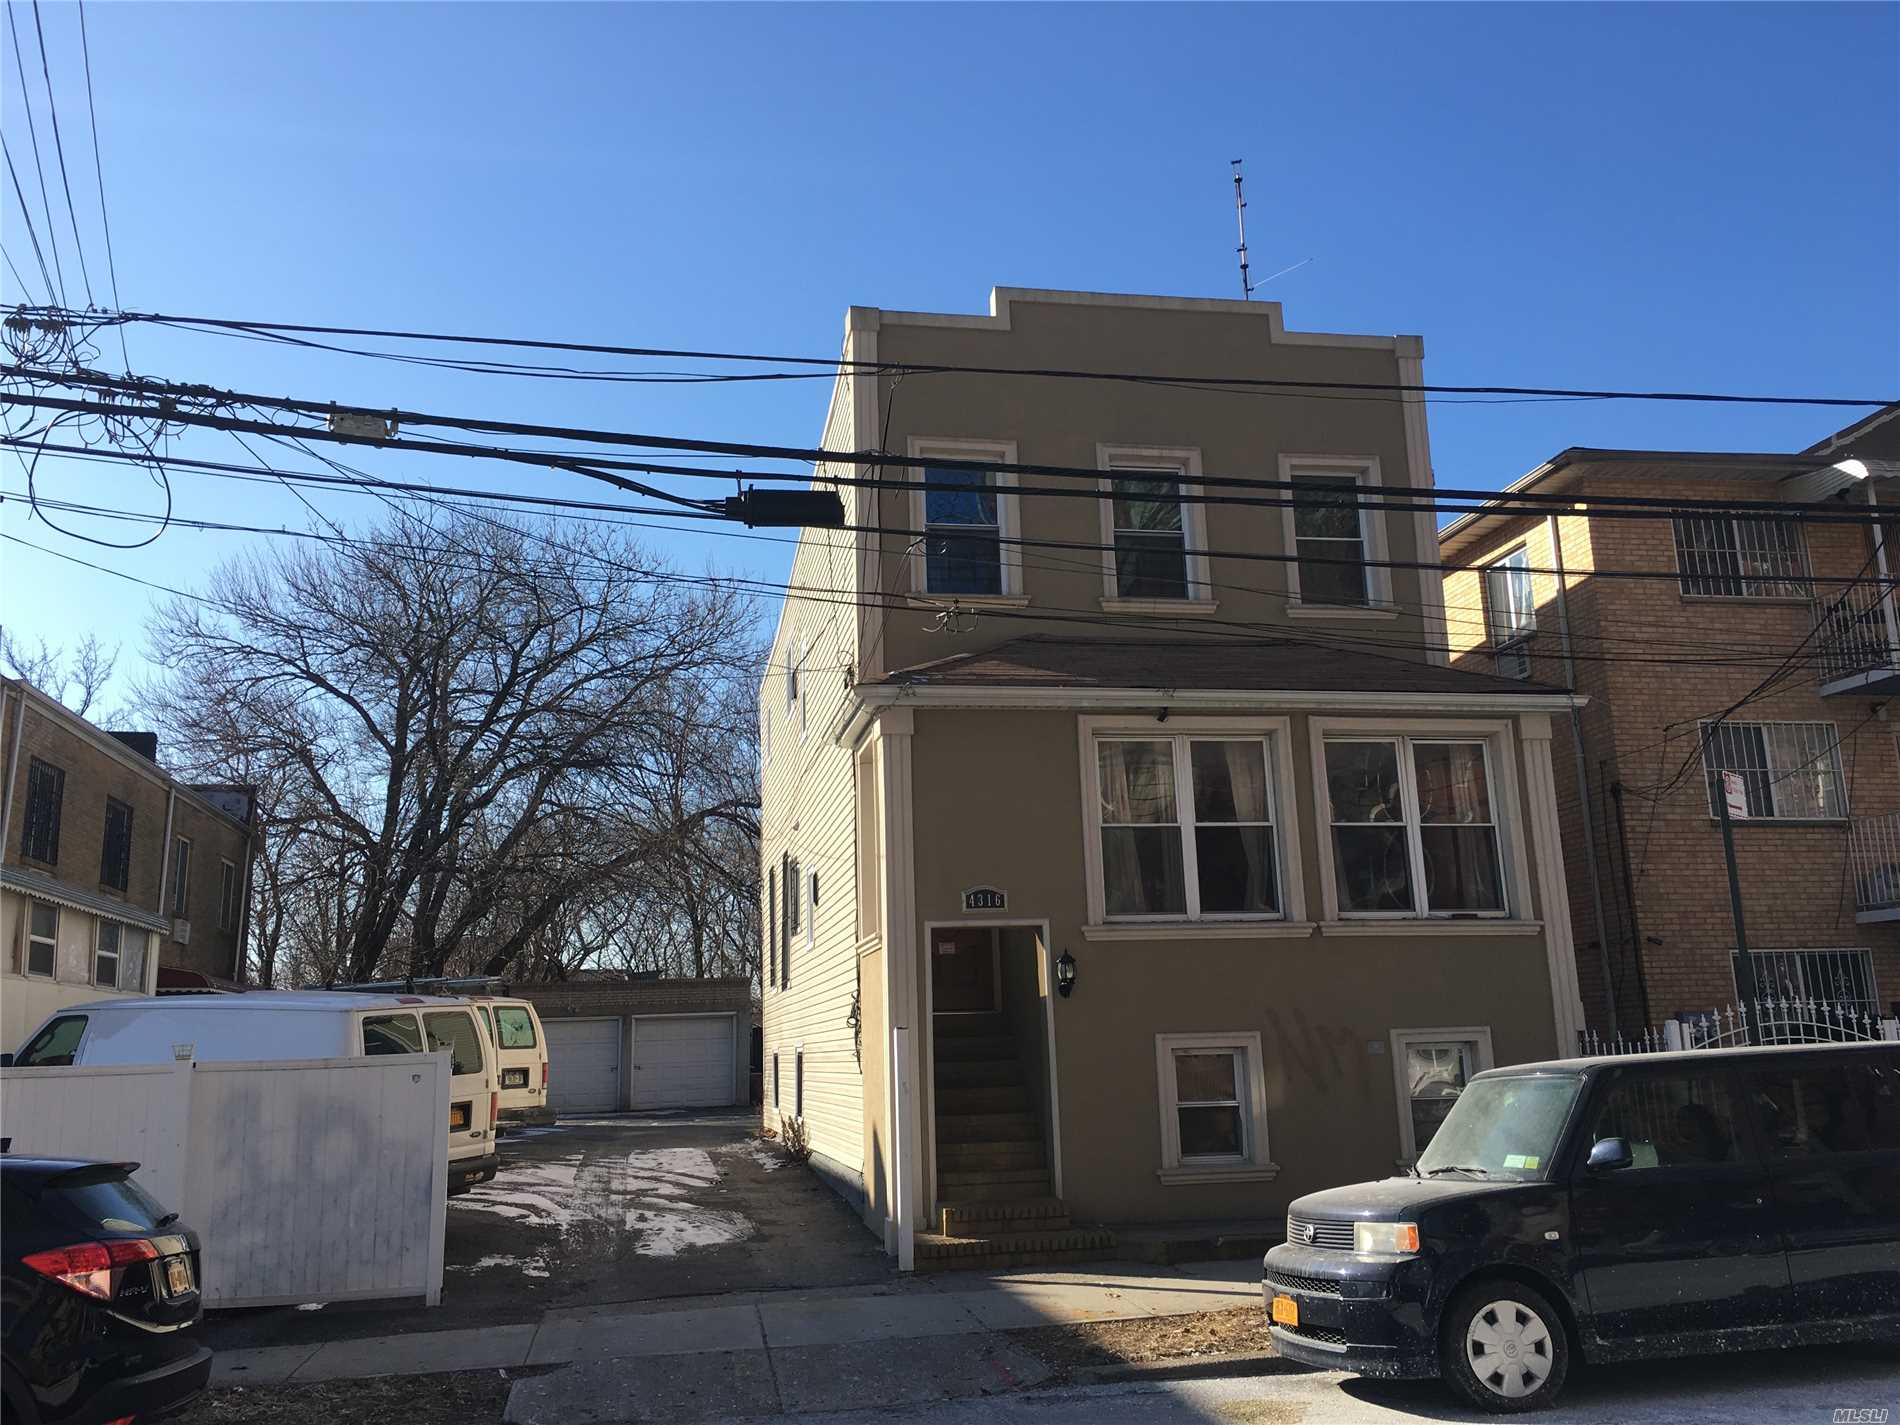 Hot Location, , , Center Of Elmhurst, 2 Det. Legal Family, 3 Car Garage, 10 More Parking Spaces. R5 Zoing, 50X120, Land Value, Can Build Two 3 Family, Minutes To Roosevelt Ave. 74 Street Subway Station,  7, E, F, M, .R, Trains, Everything Is Convenience. Hurry, Won't Last !!!